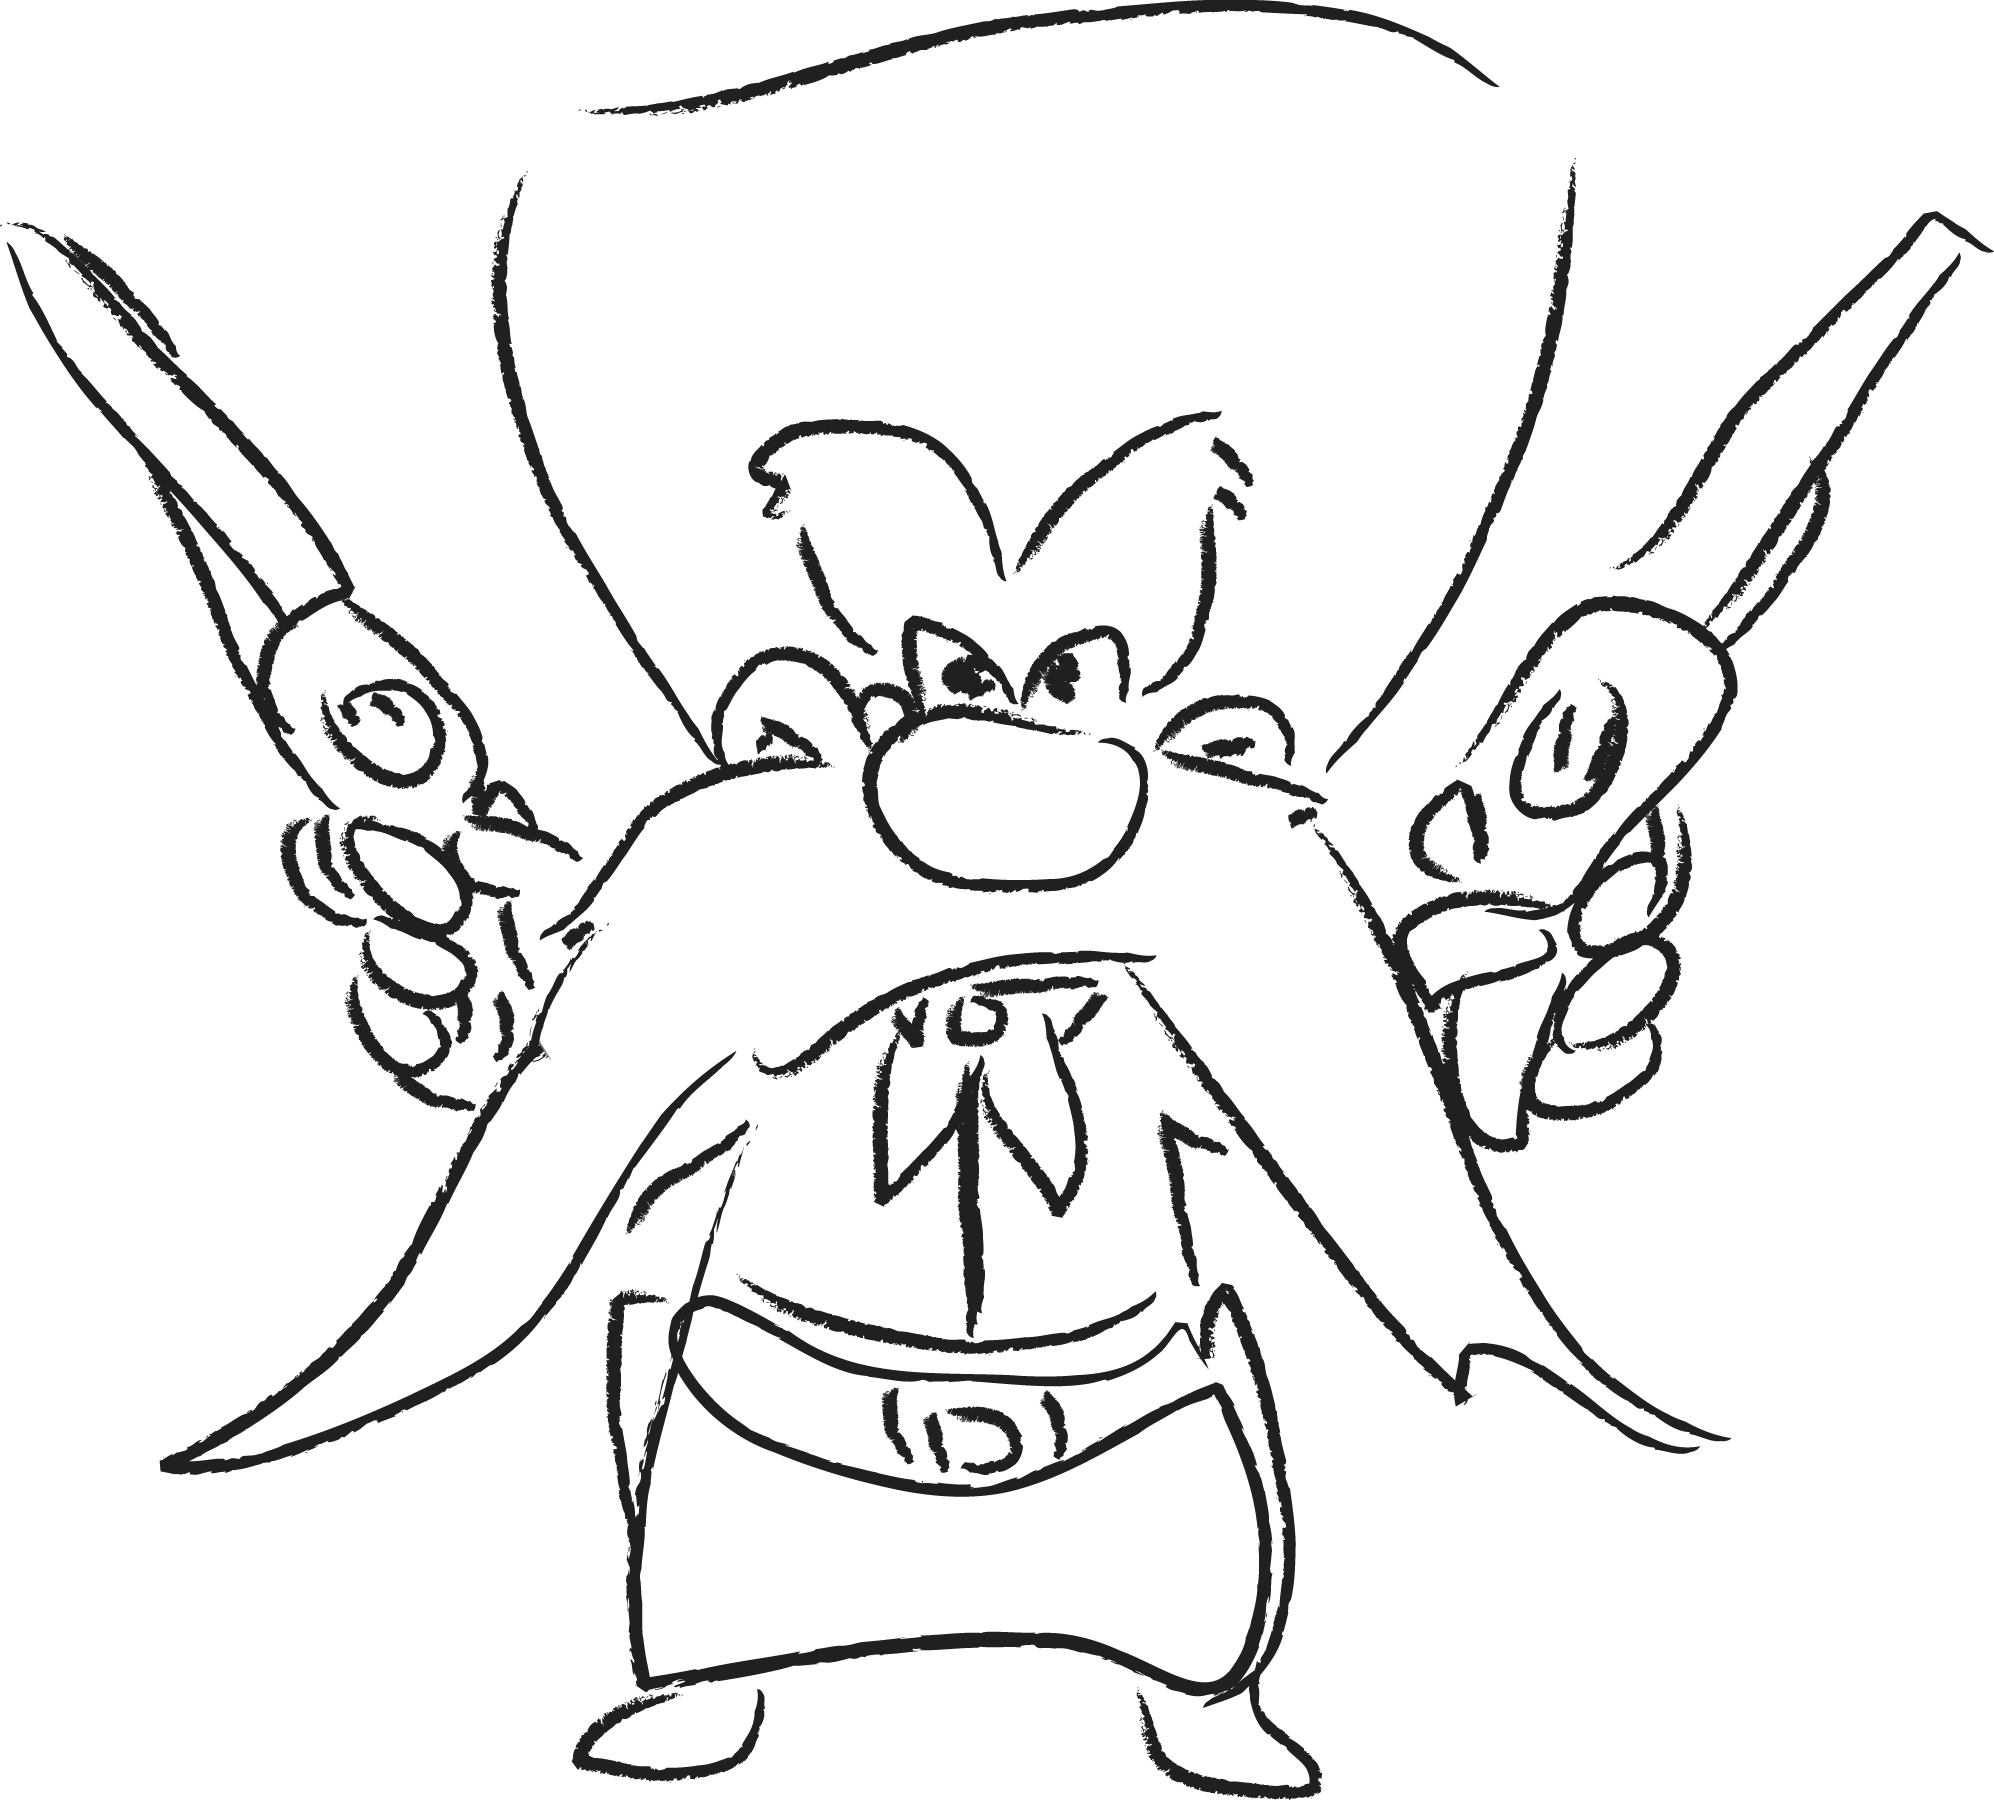 funny cartoon characters drawing at getdrawings com free for